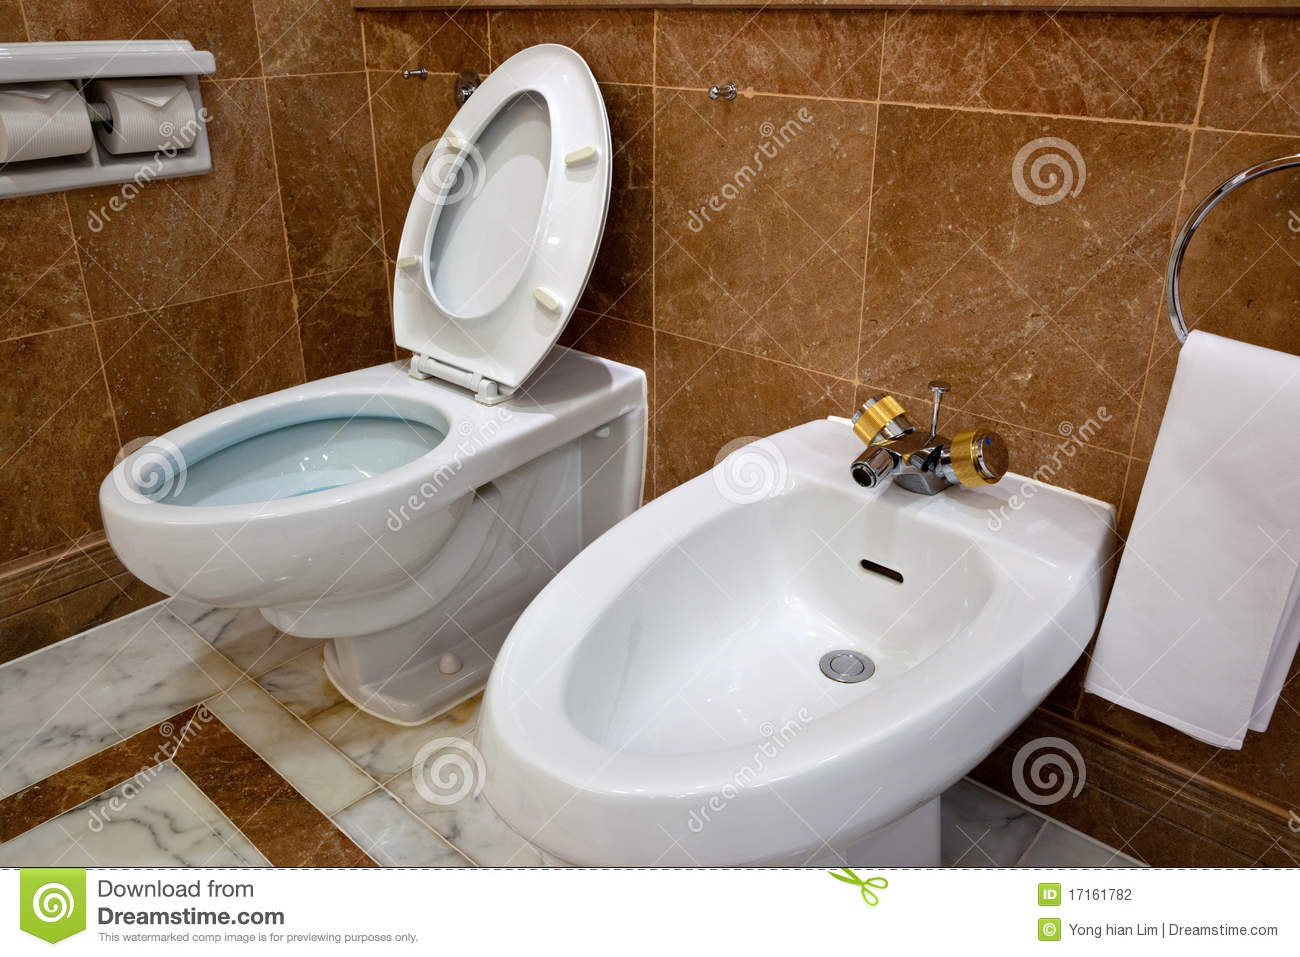 Toilet And Bidet In Hotel Bathroom Stock Photo Image Of